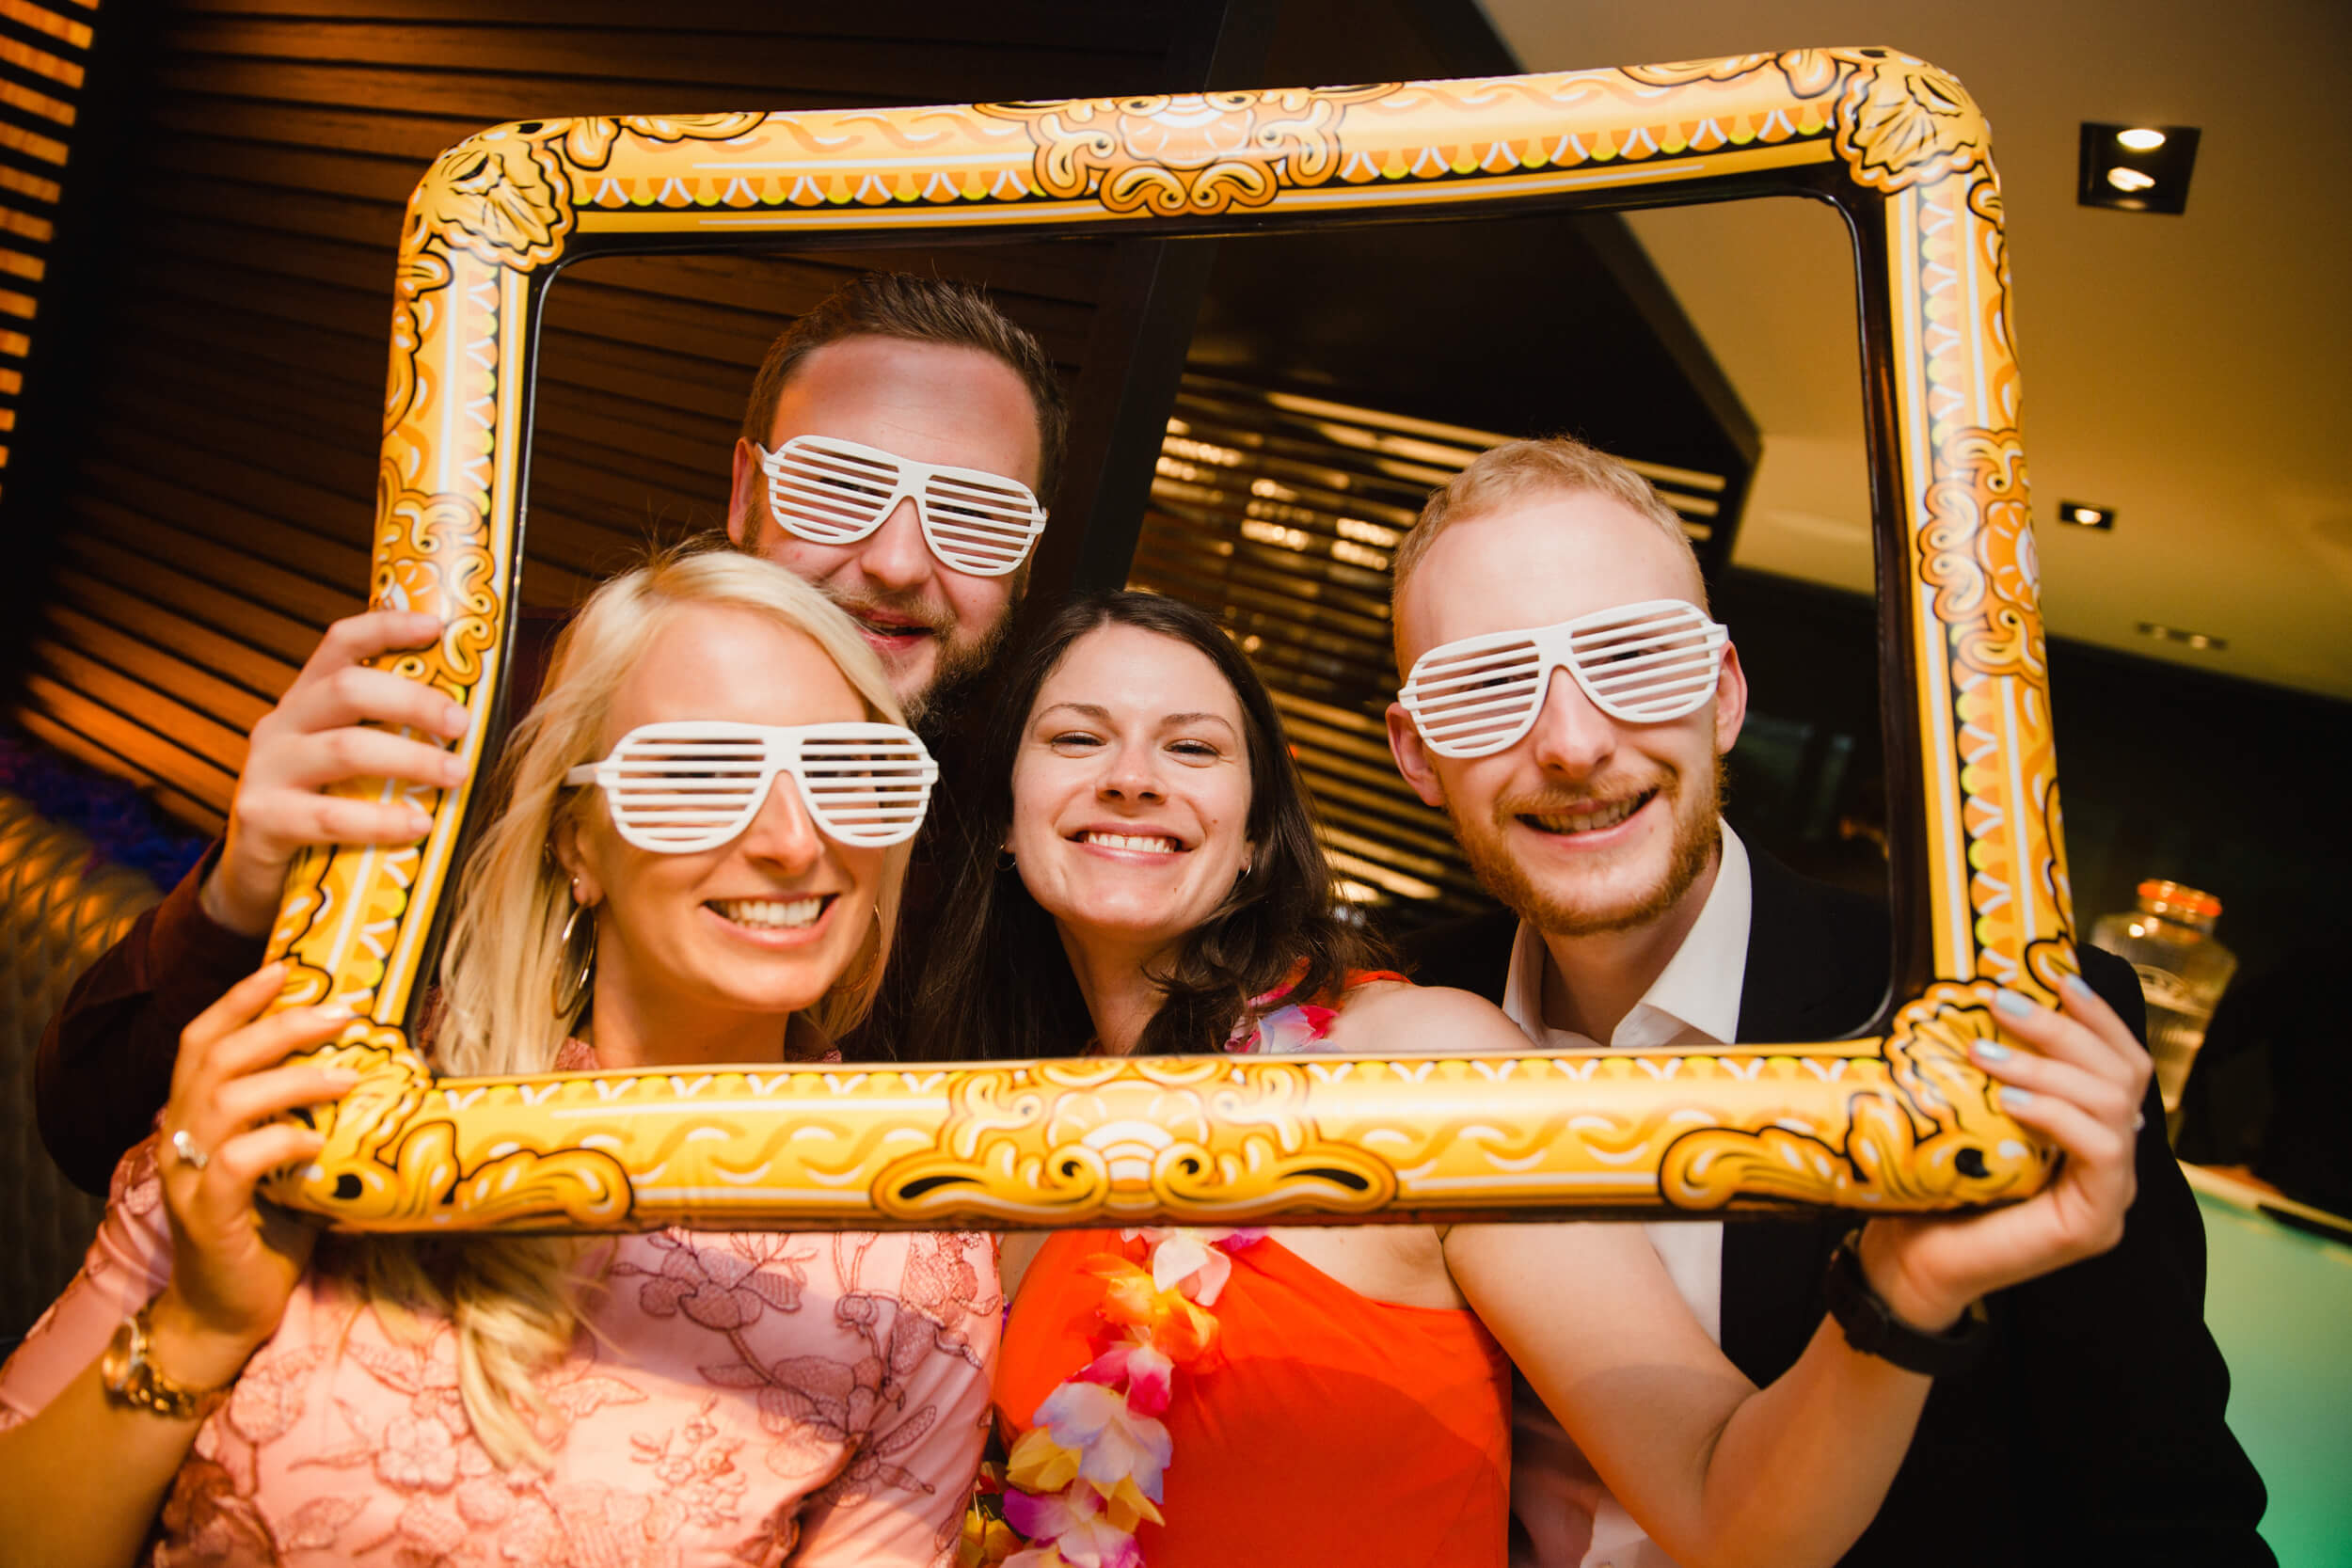 wedding guests settle for pose in frame for photograph